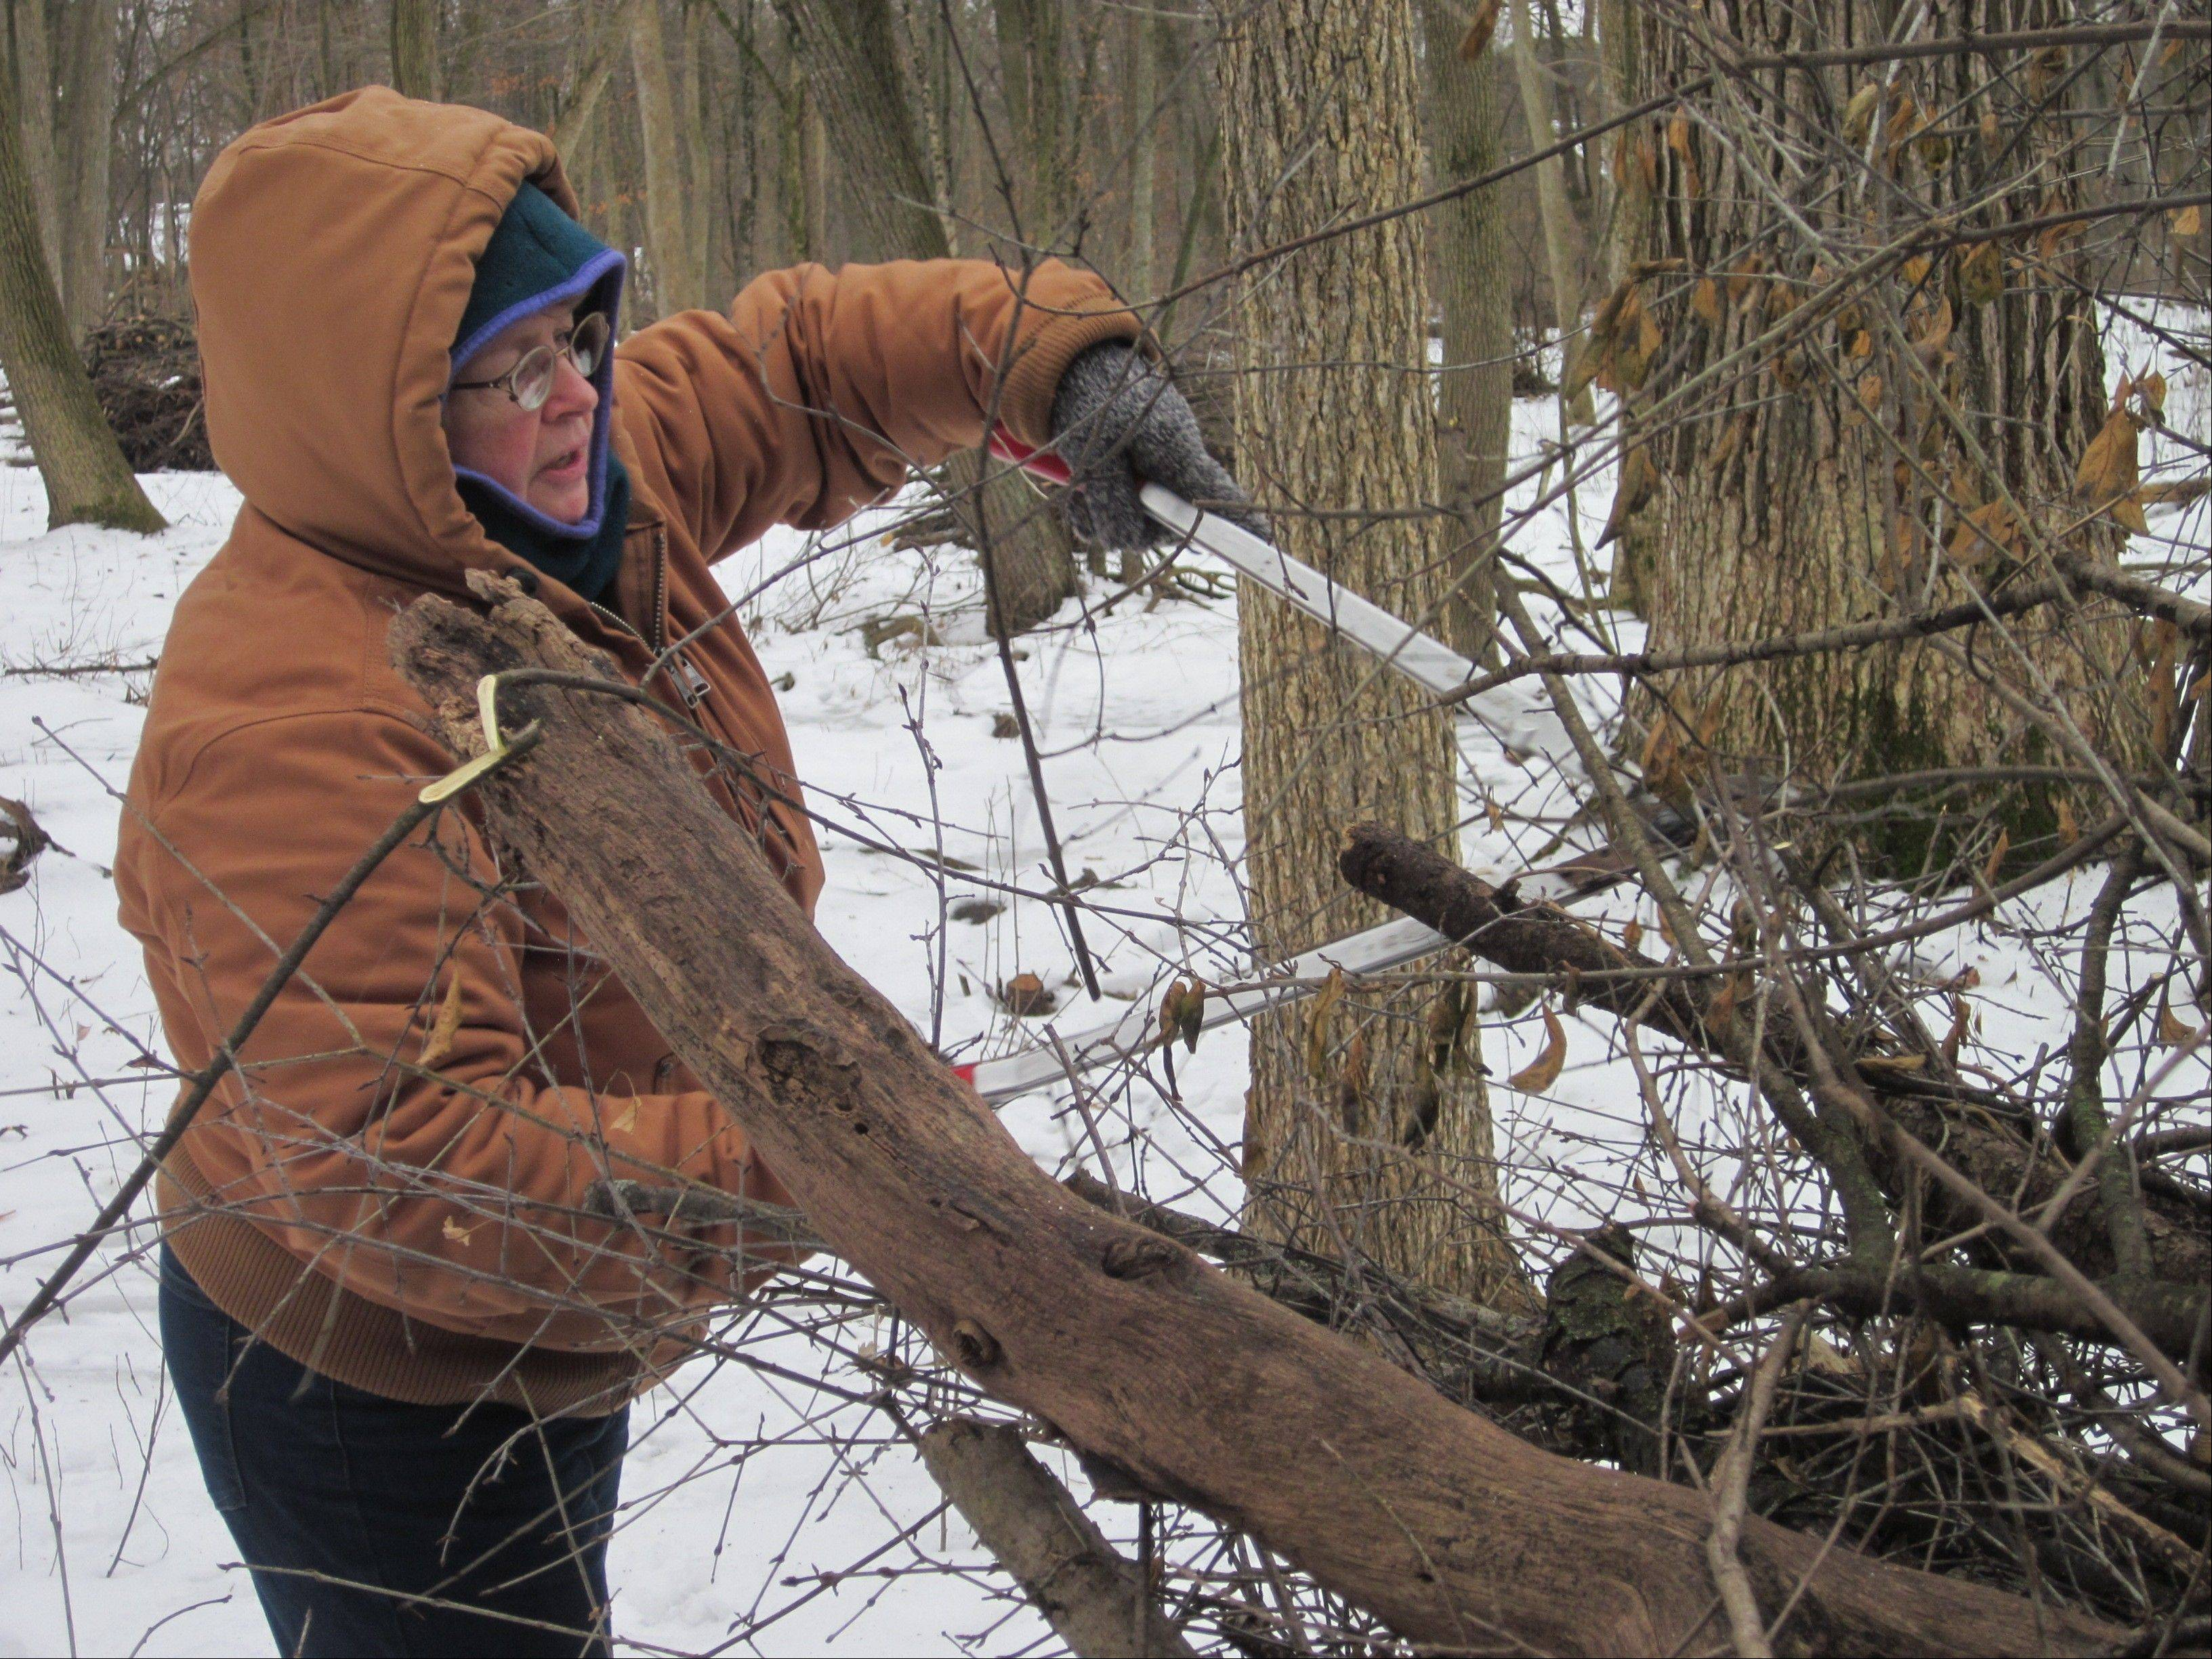 Volunteer Kathy Garness uses loppers to cut buckthorn Sunday during a restoration work day at the Wilmot Woods Forest Preserve near Libertyville. The invasive species crowds out native plants.